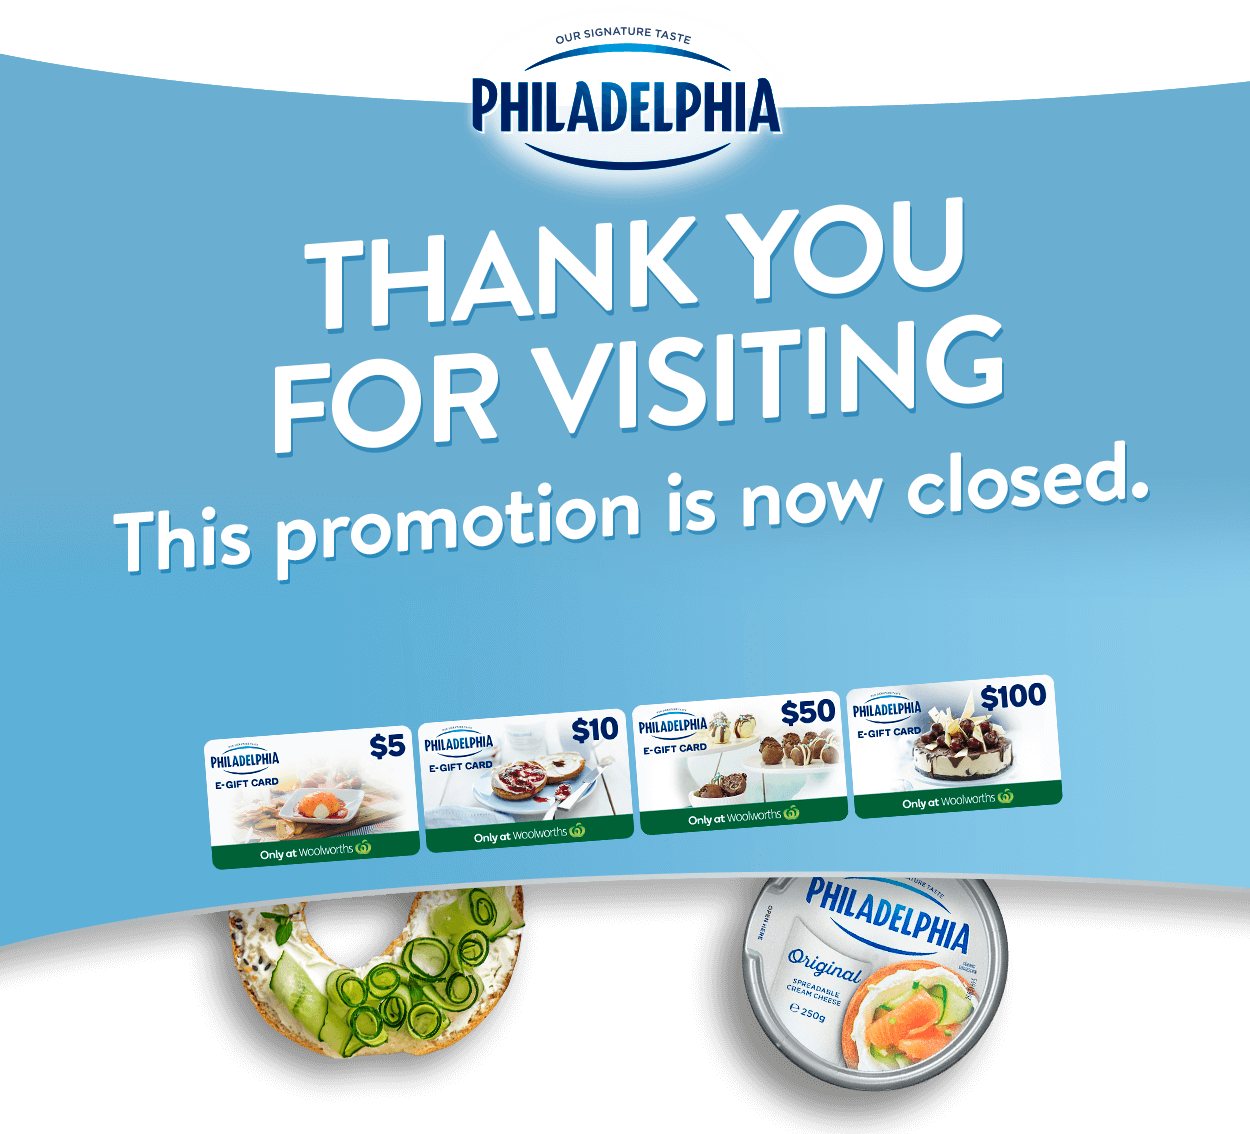 PHILADELPHIA - Thank you for visiting. This promotion is now closed.